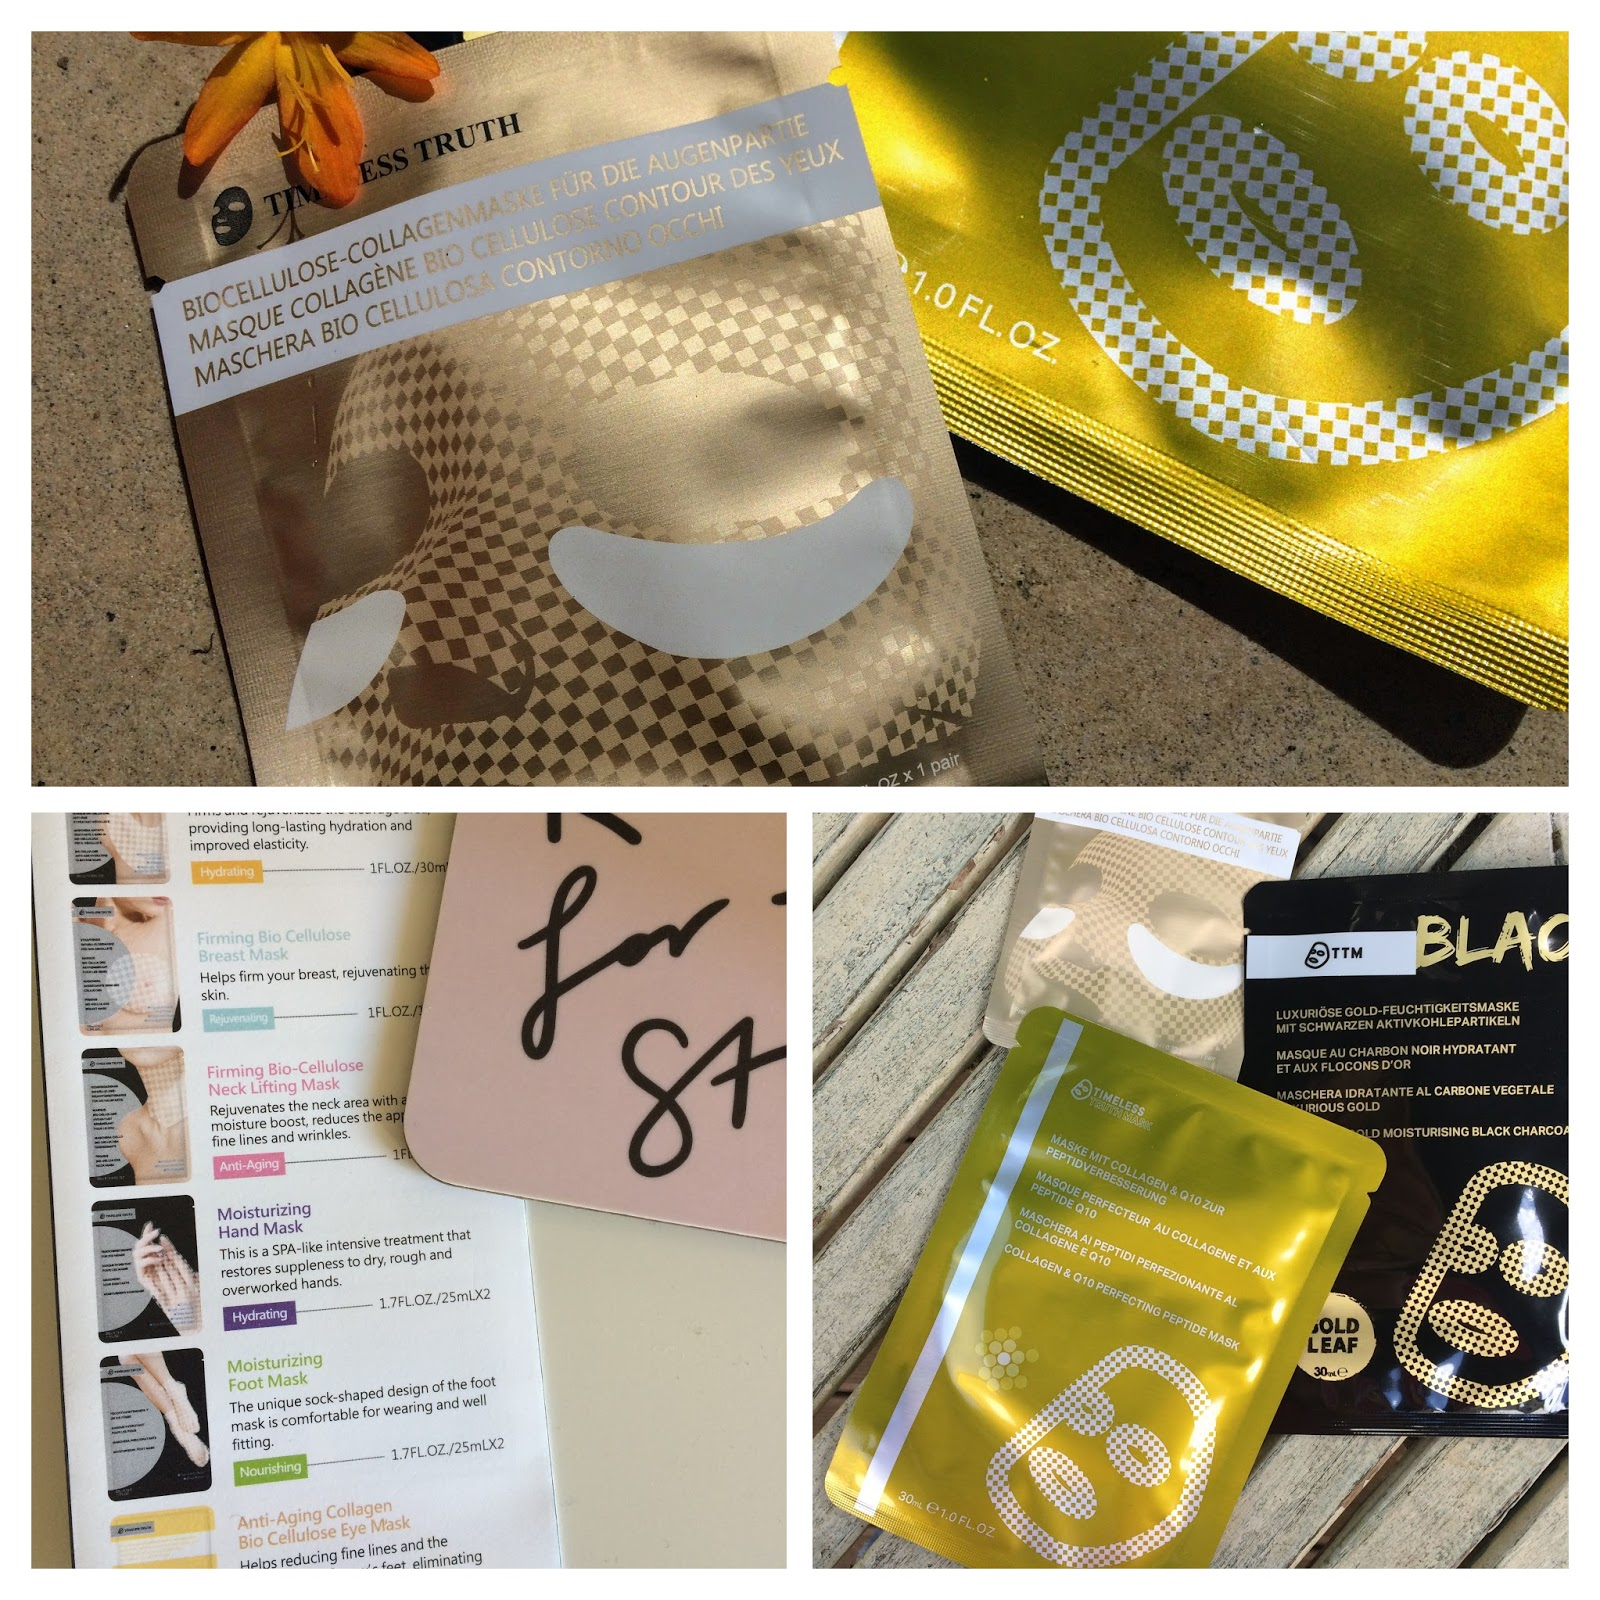 Timeless Truth Partial mask bio cellulose collagen eye mask